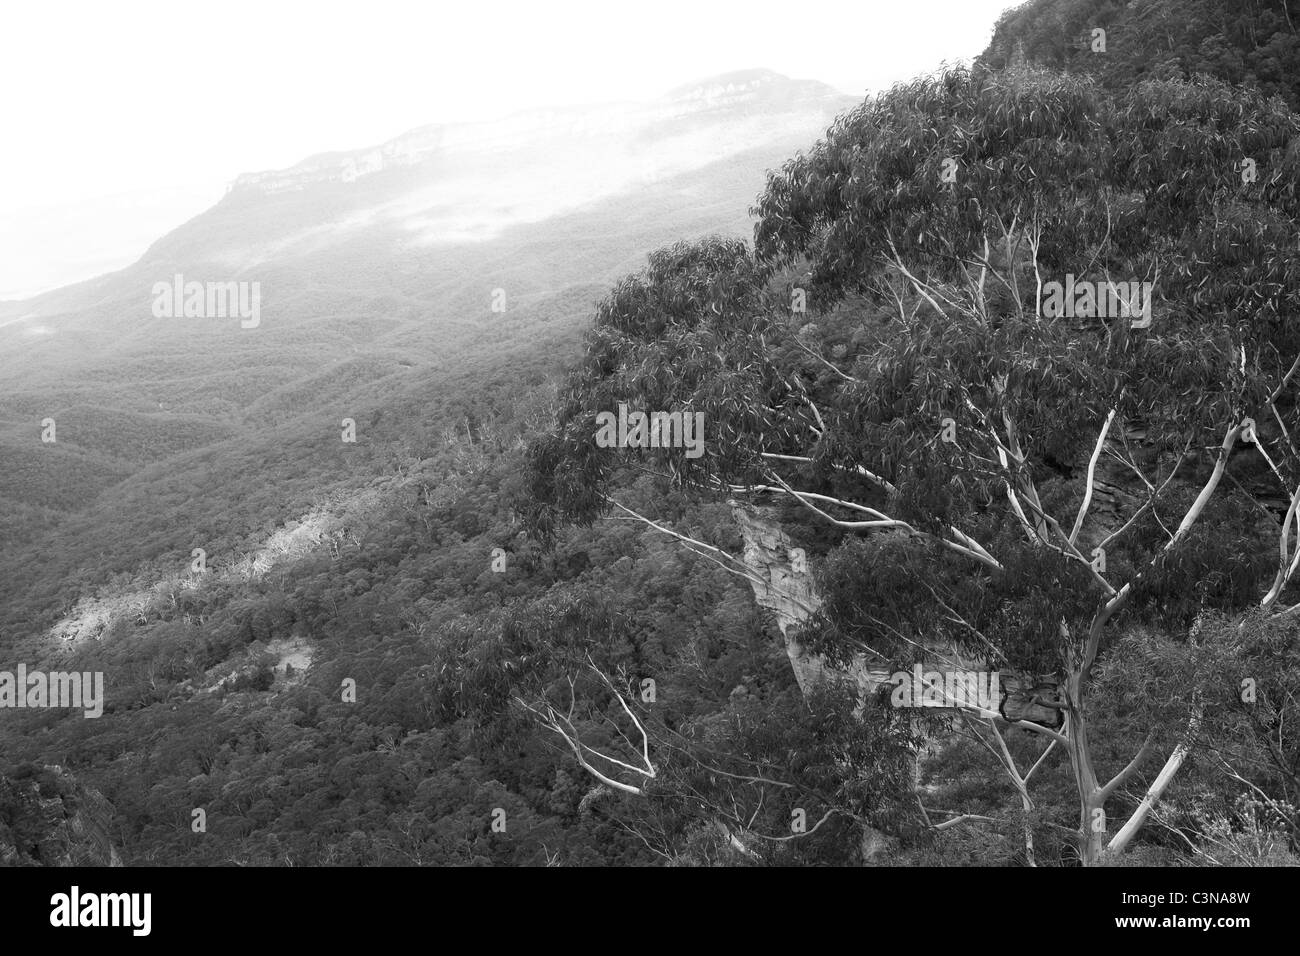 Eucalyptus tree before vast landscape of Blue Mountains - Katoomba, NSW, Australia Stock Photo